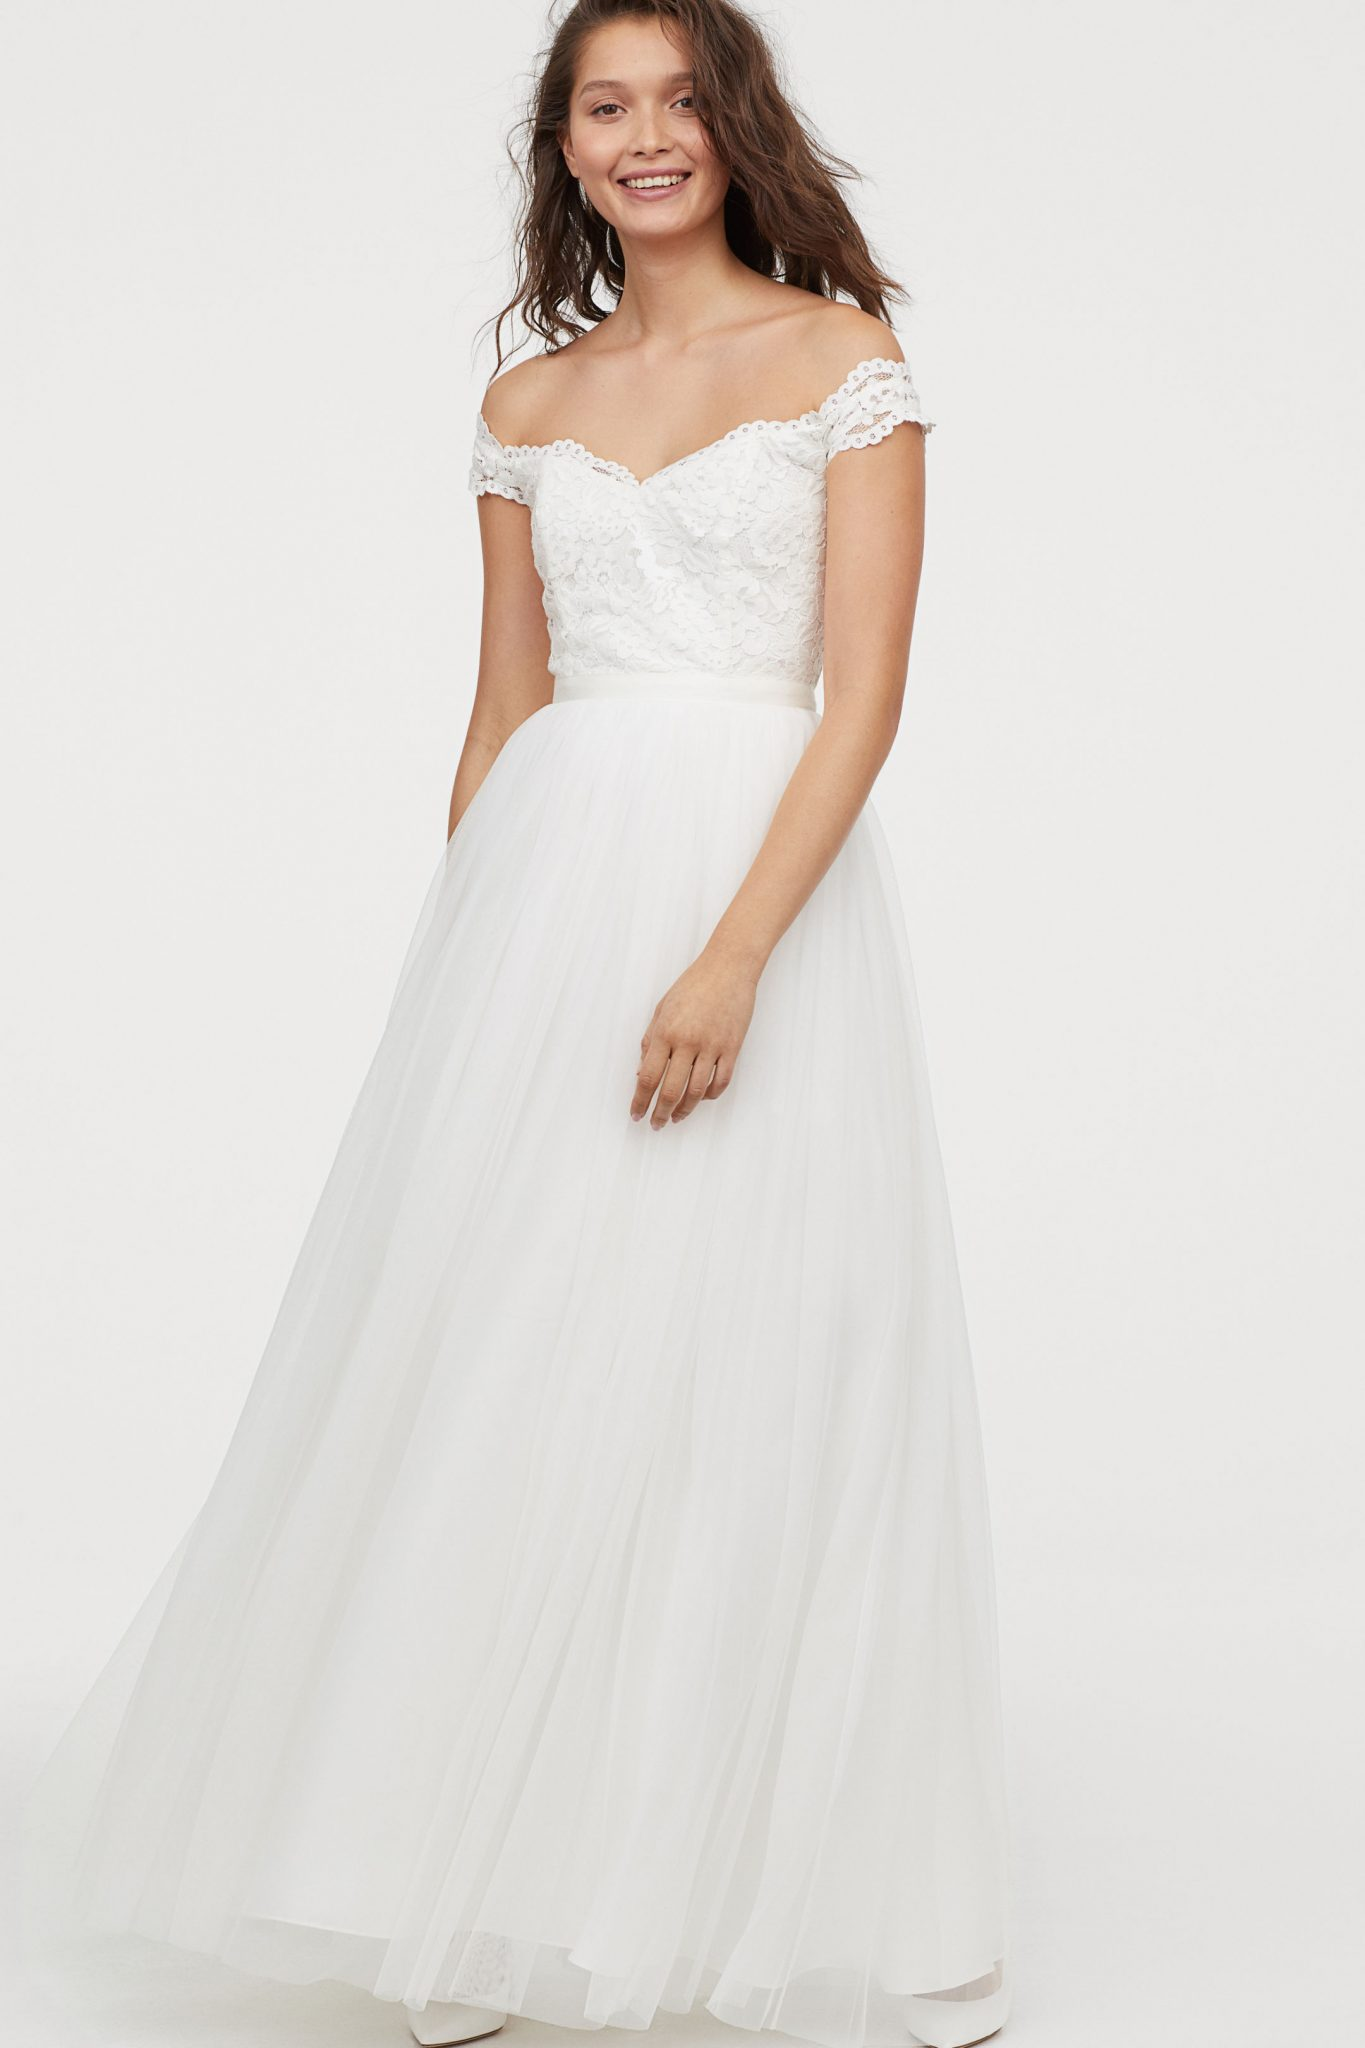 b6b8ce36f1c9 Swoon! We're in love with this €220 wedding dress from H&M's new ...